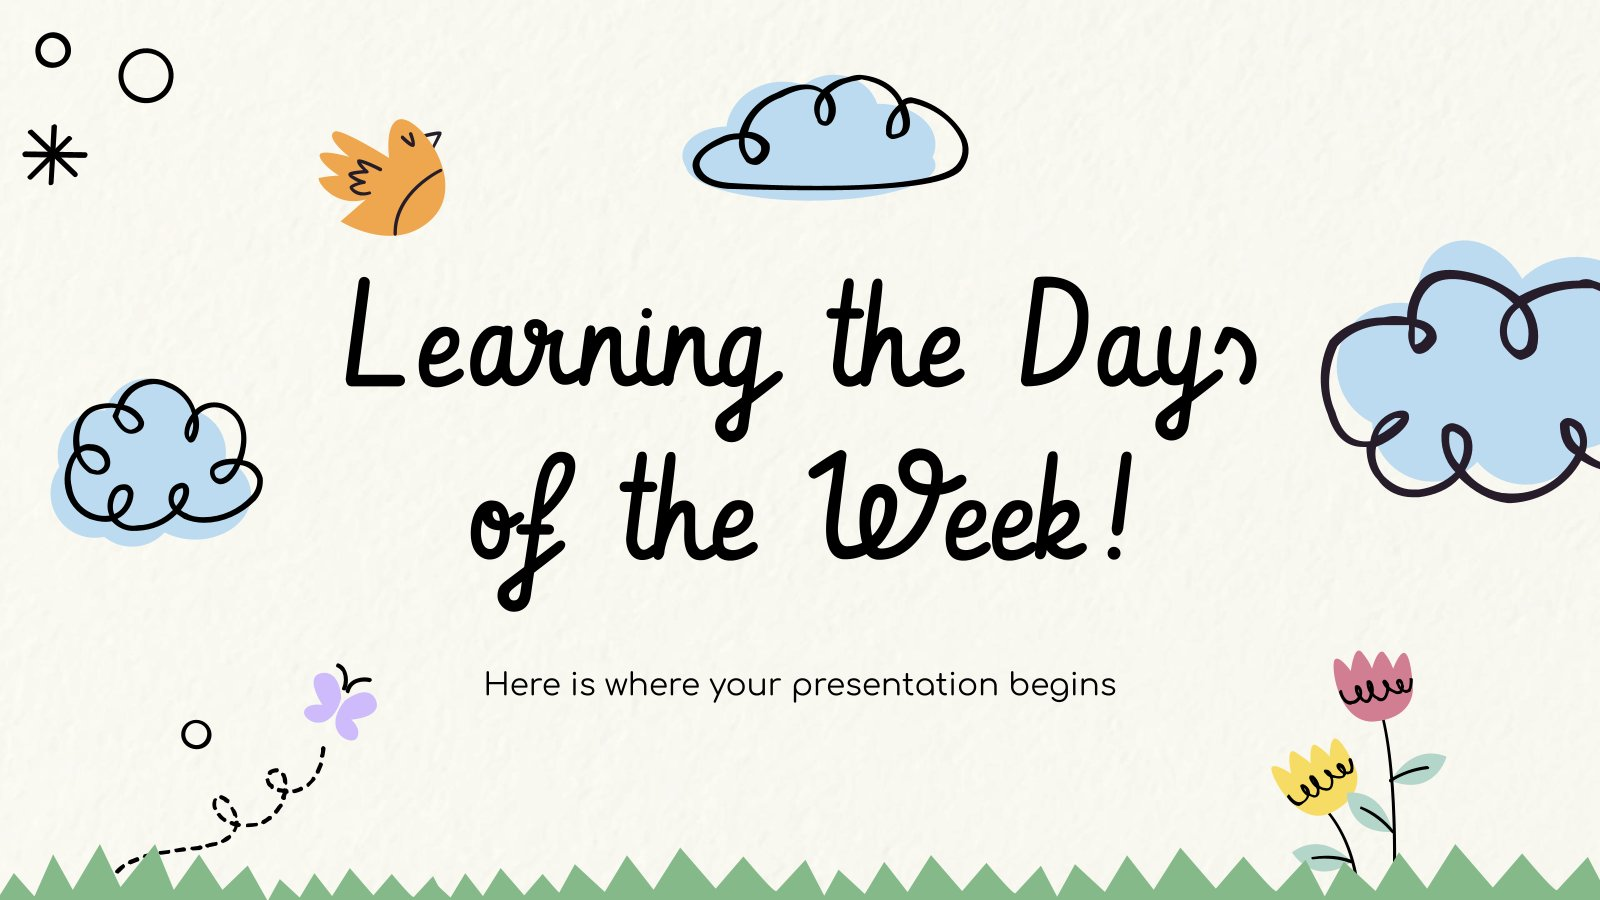 Learning the Days of the Week! presentation template